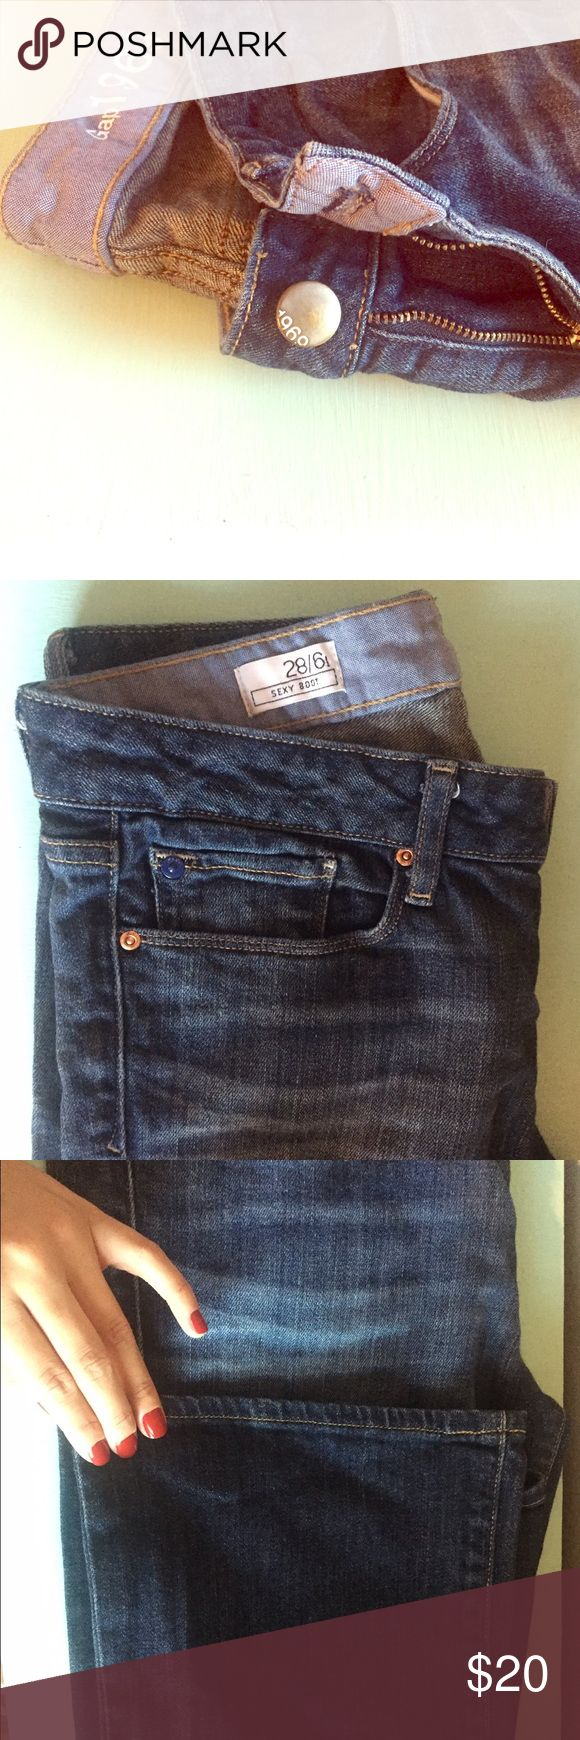 Gap Boot Cut Jeans Gap Boot Cut jeans! Super cute with heels or heeled boots! GAP Jeans Boot Cut